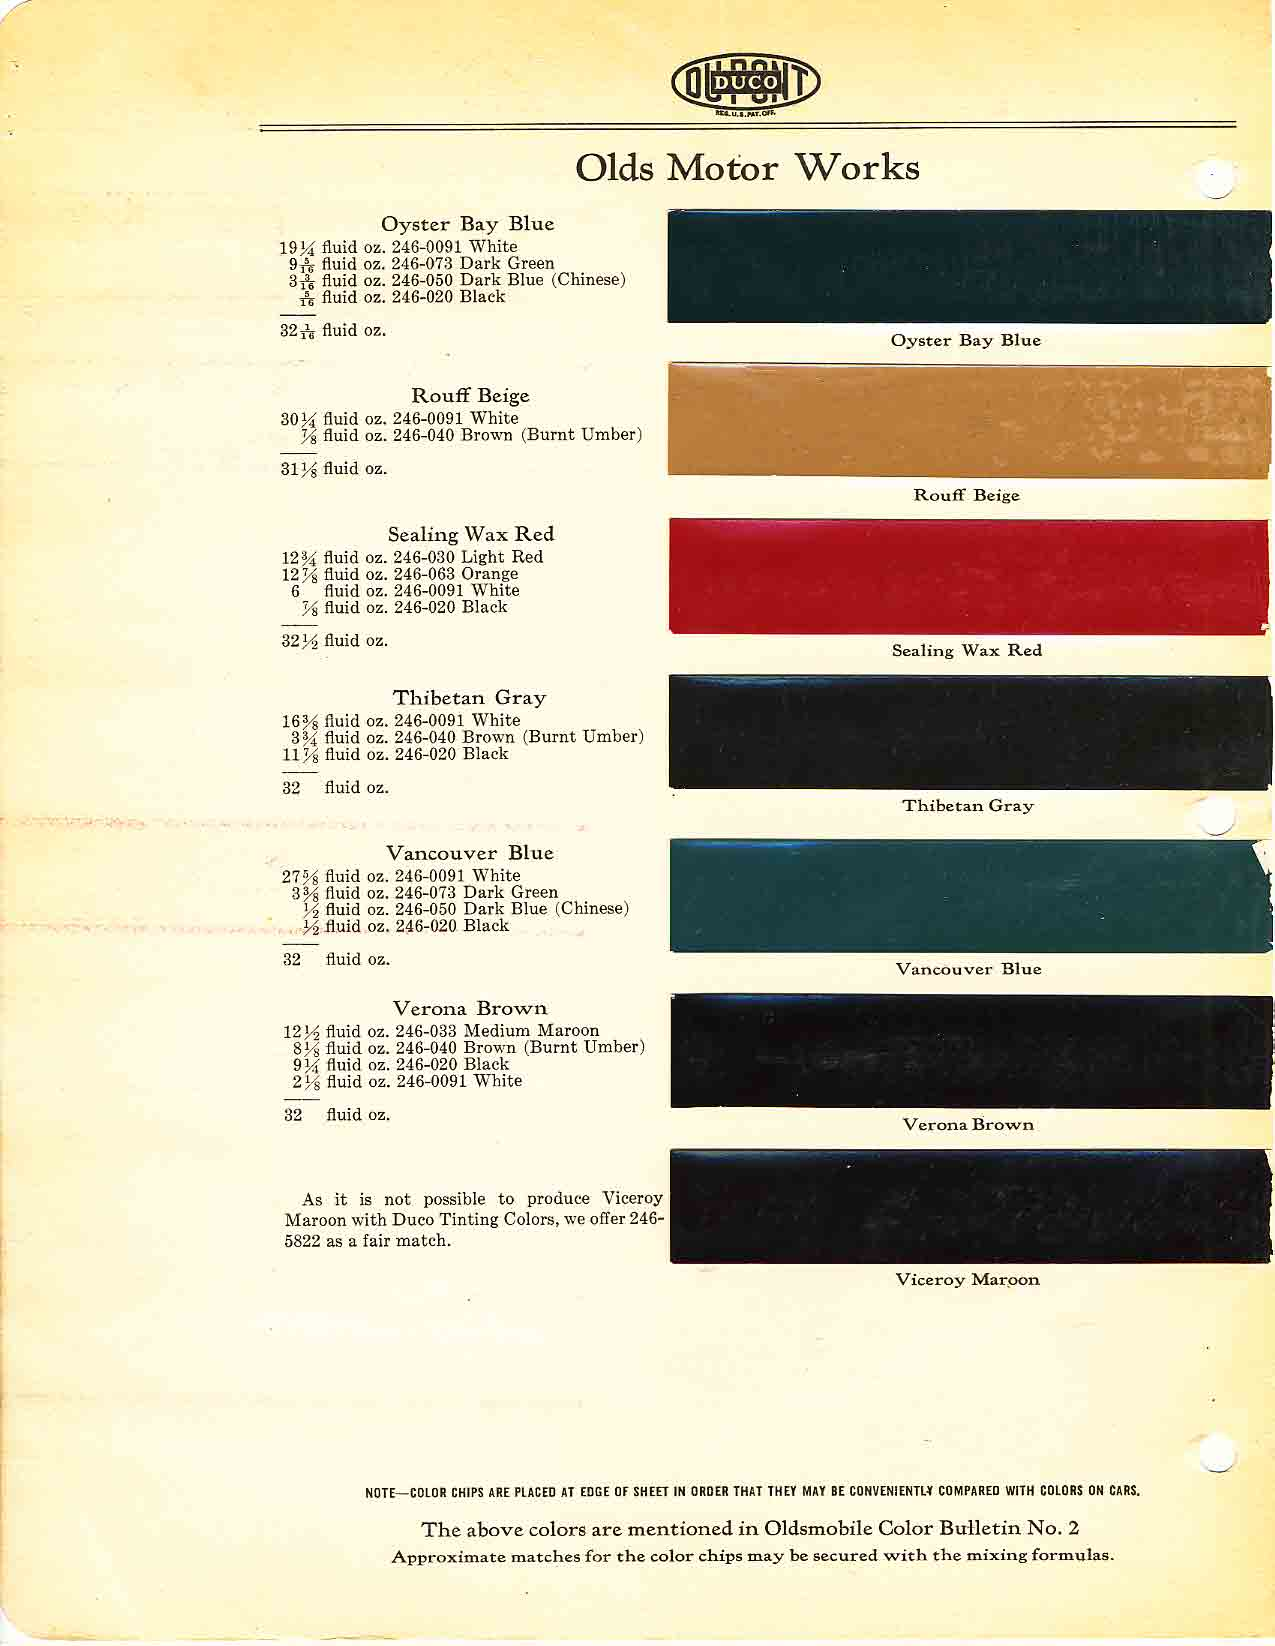 Oldsmobile Paint and Color Code Chart